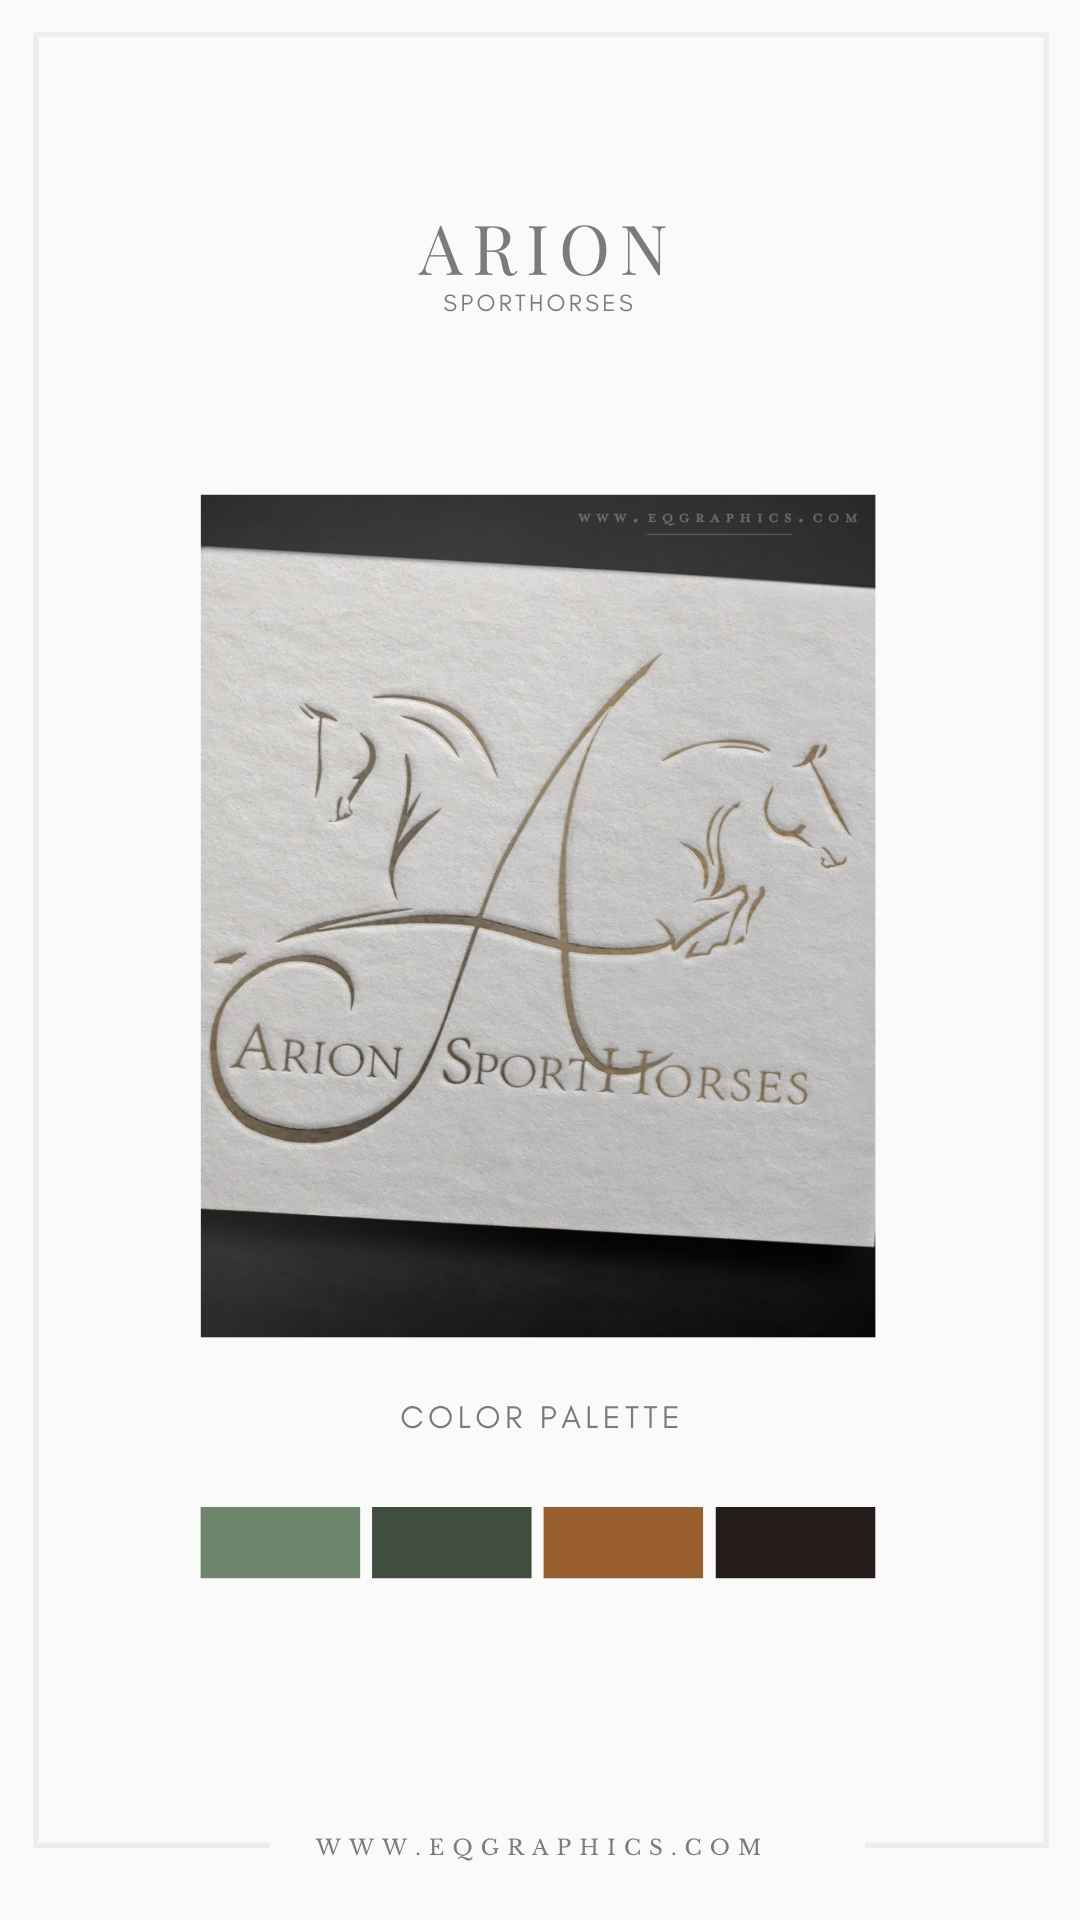 Minimalist Logo Features Abstract Sporthorse Design That's Stunningly Realistic